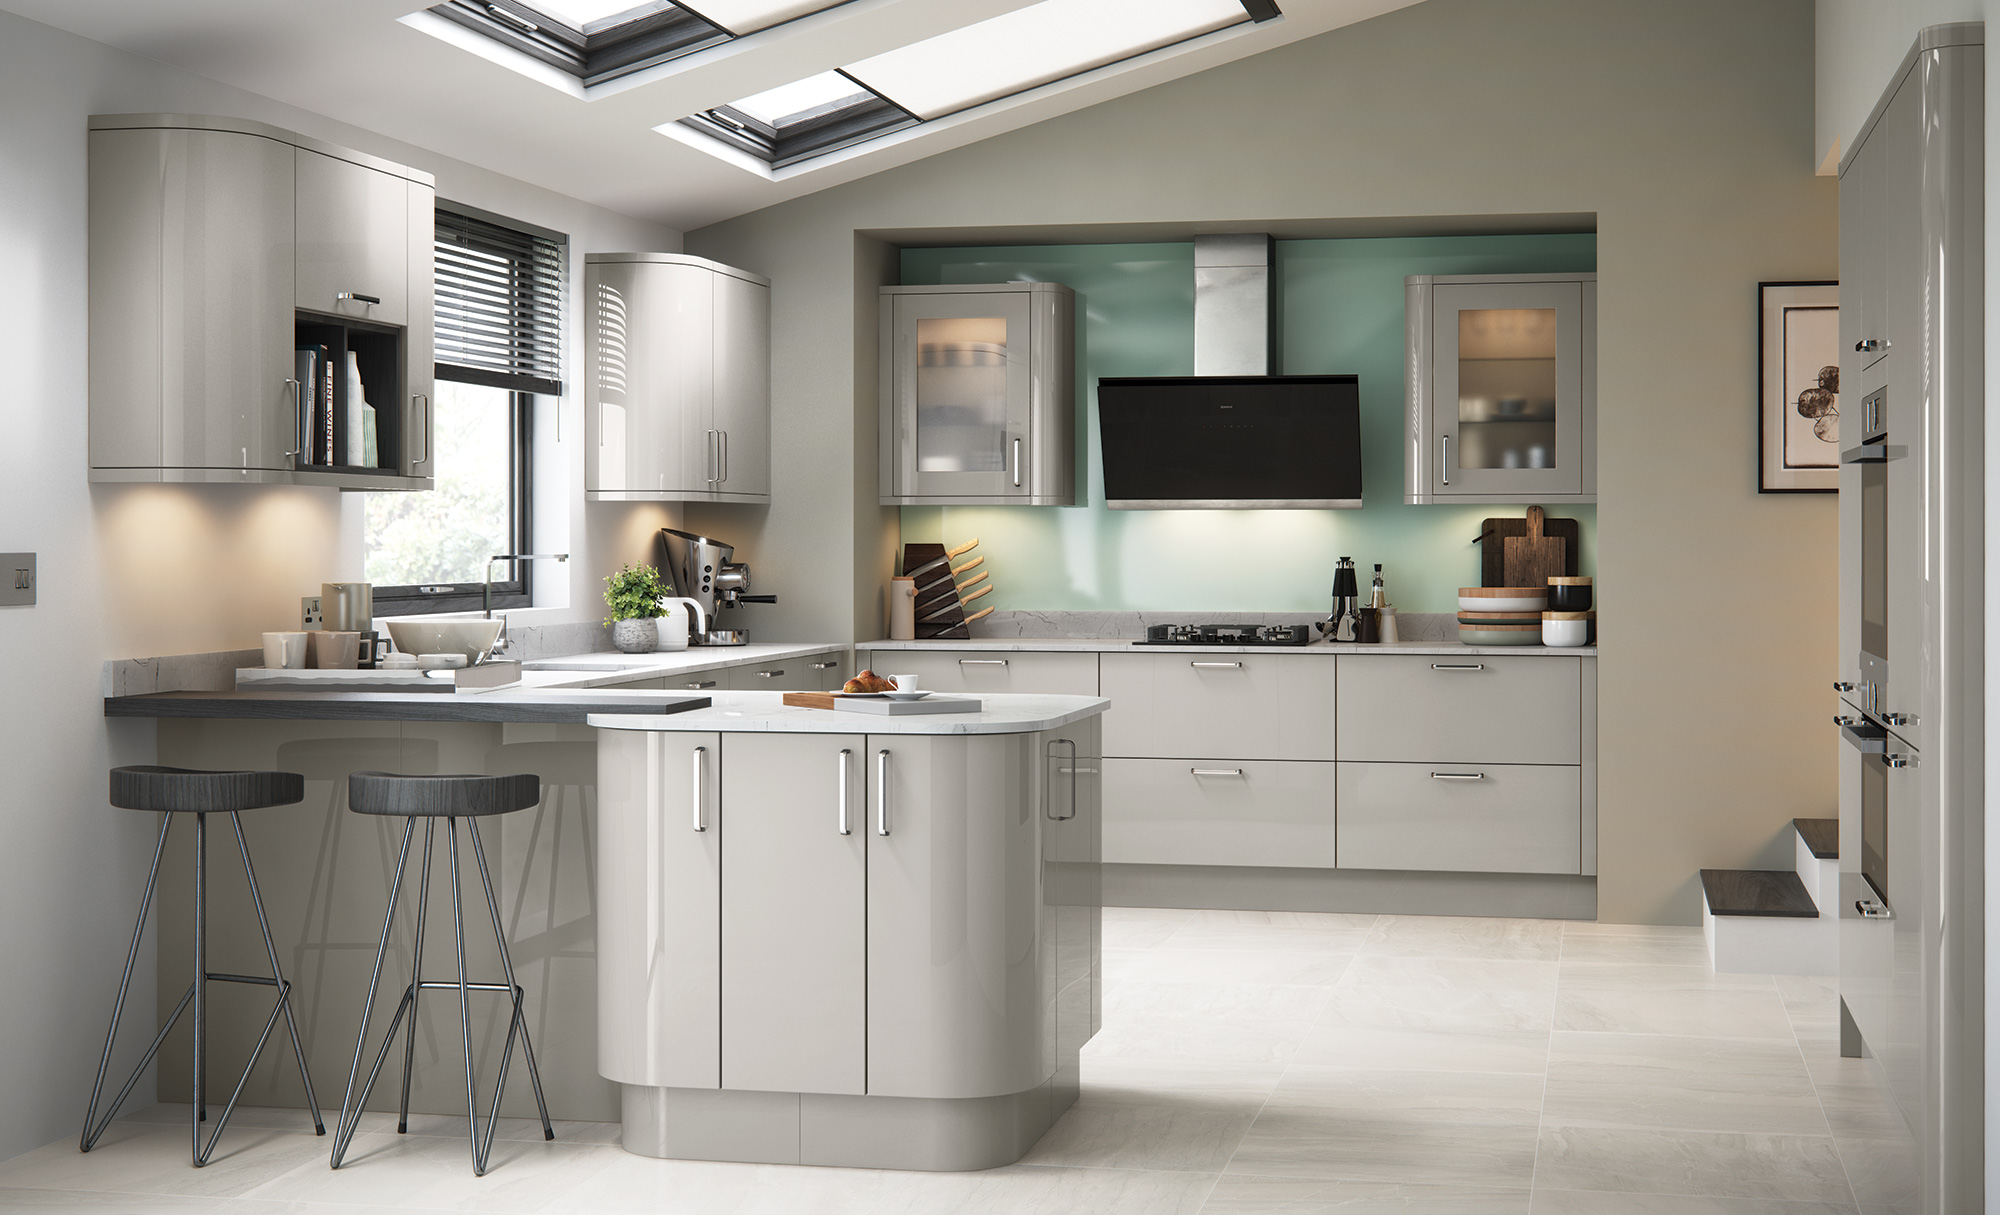 Cost In Uk For Fitting New Kitchen